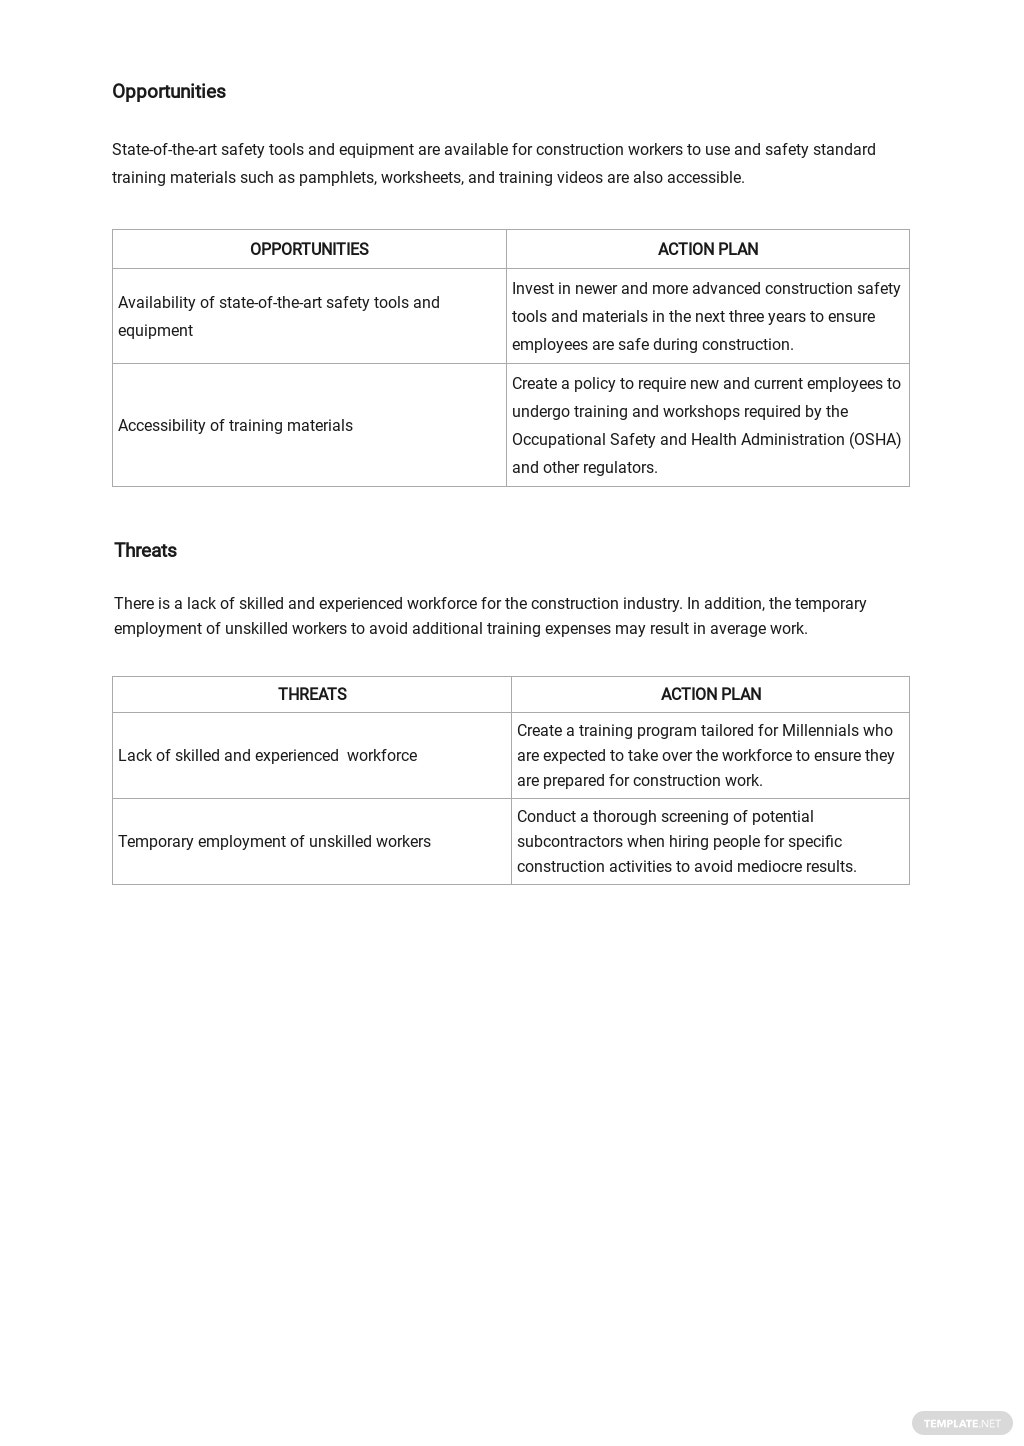 Construction Safety SWOT Analysis Template 2.jpe